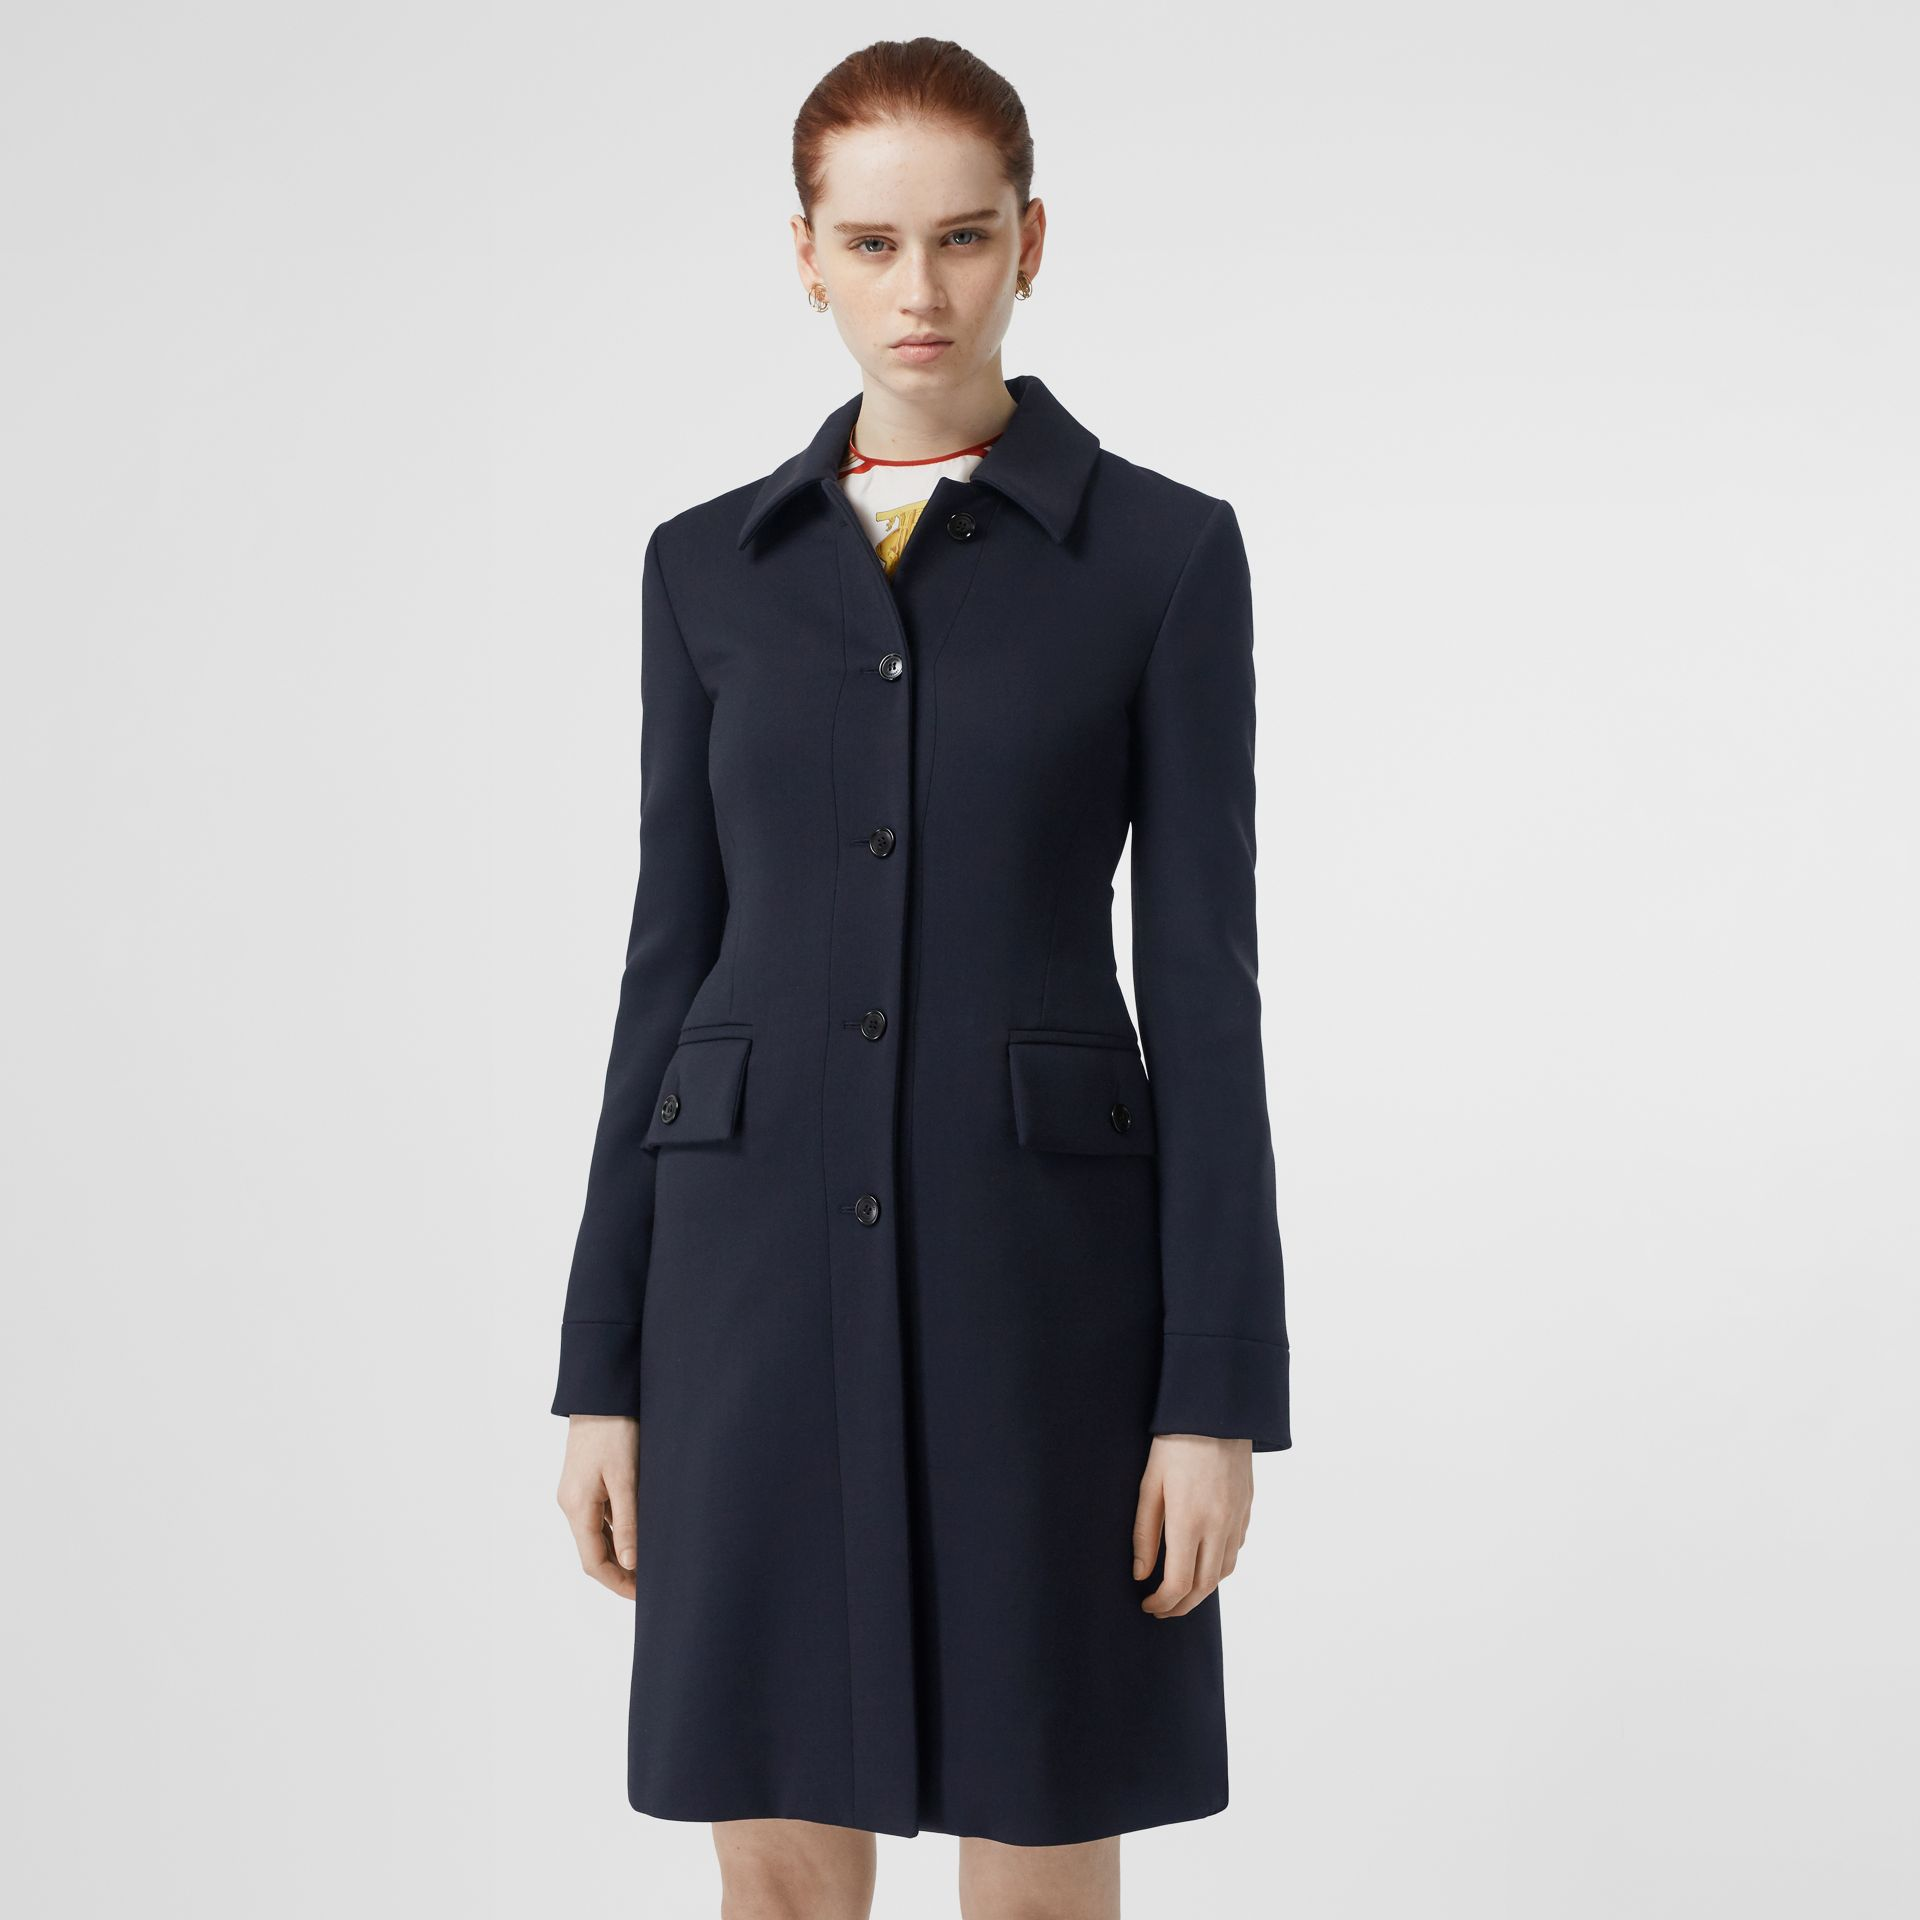 Double-faced Wool Cashmere Blend Coat in Navy - Women | Burberry Singapore - gallery image 4